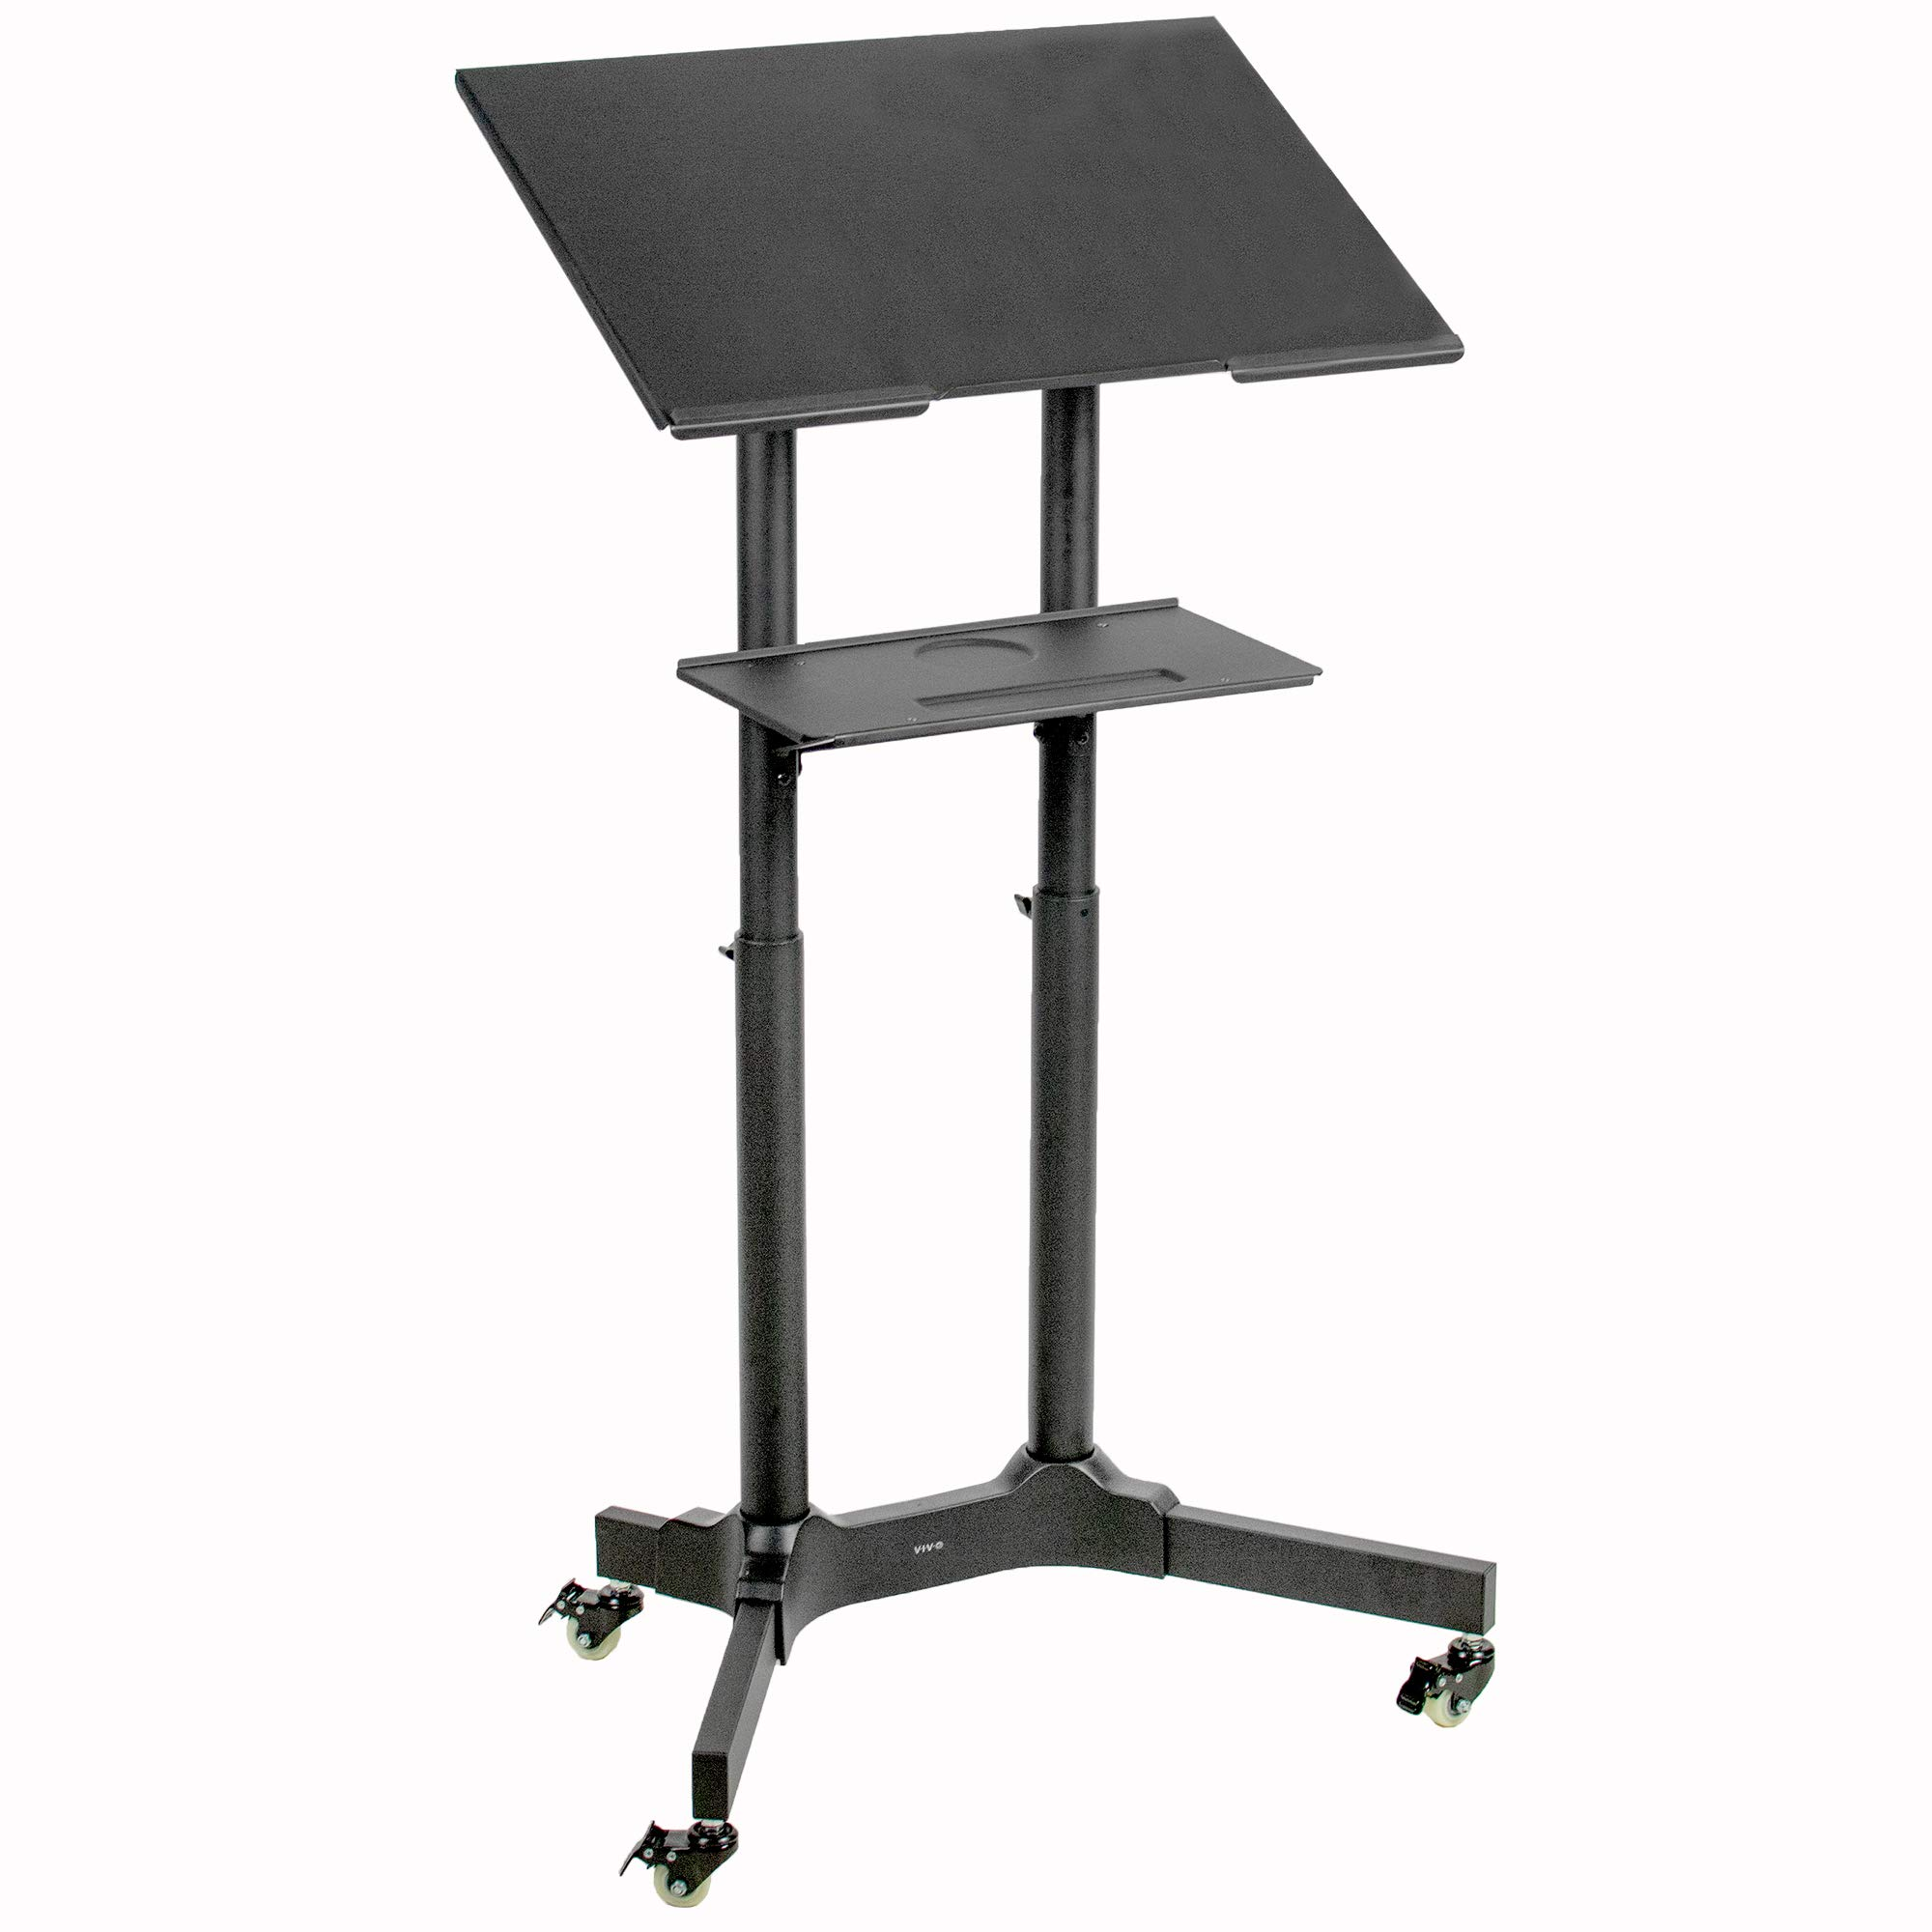 VIVO Black Steel Mobile 24 inch Height Adjustable Multi-Purpose Rolling Podium, Lectern, and Laptop Workstation Desk with Storage Tray (CART-V03E) by VIVO